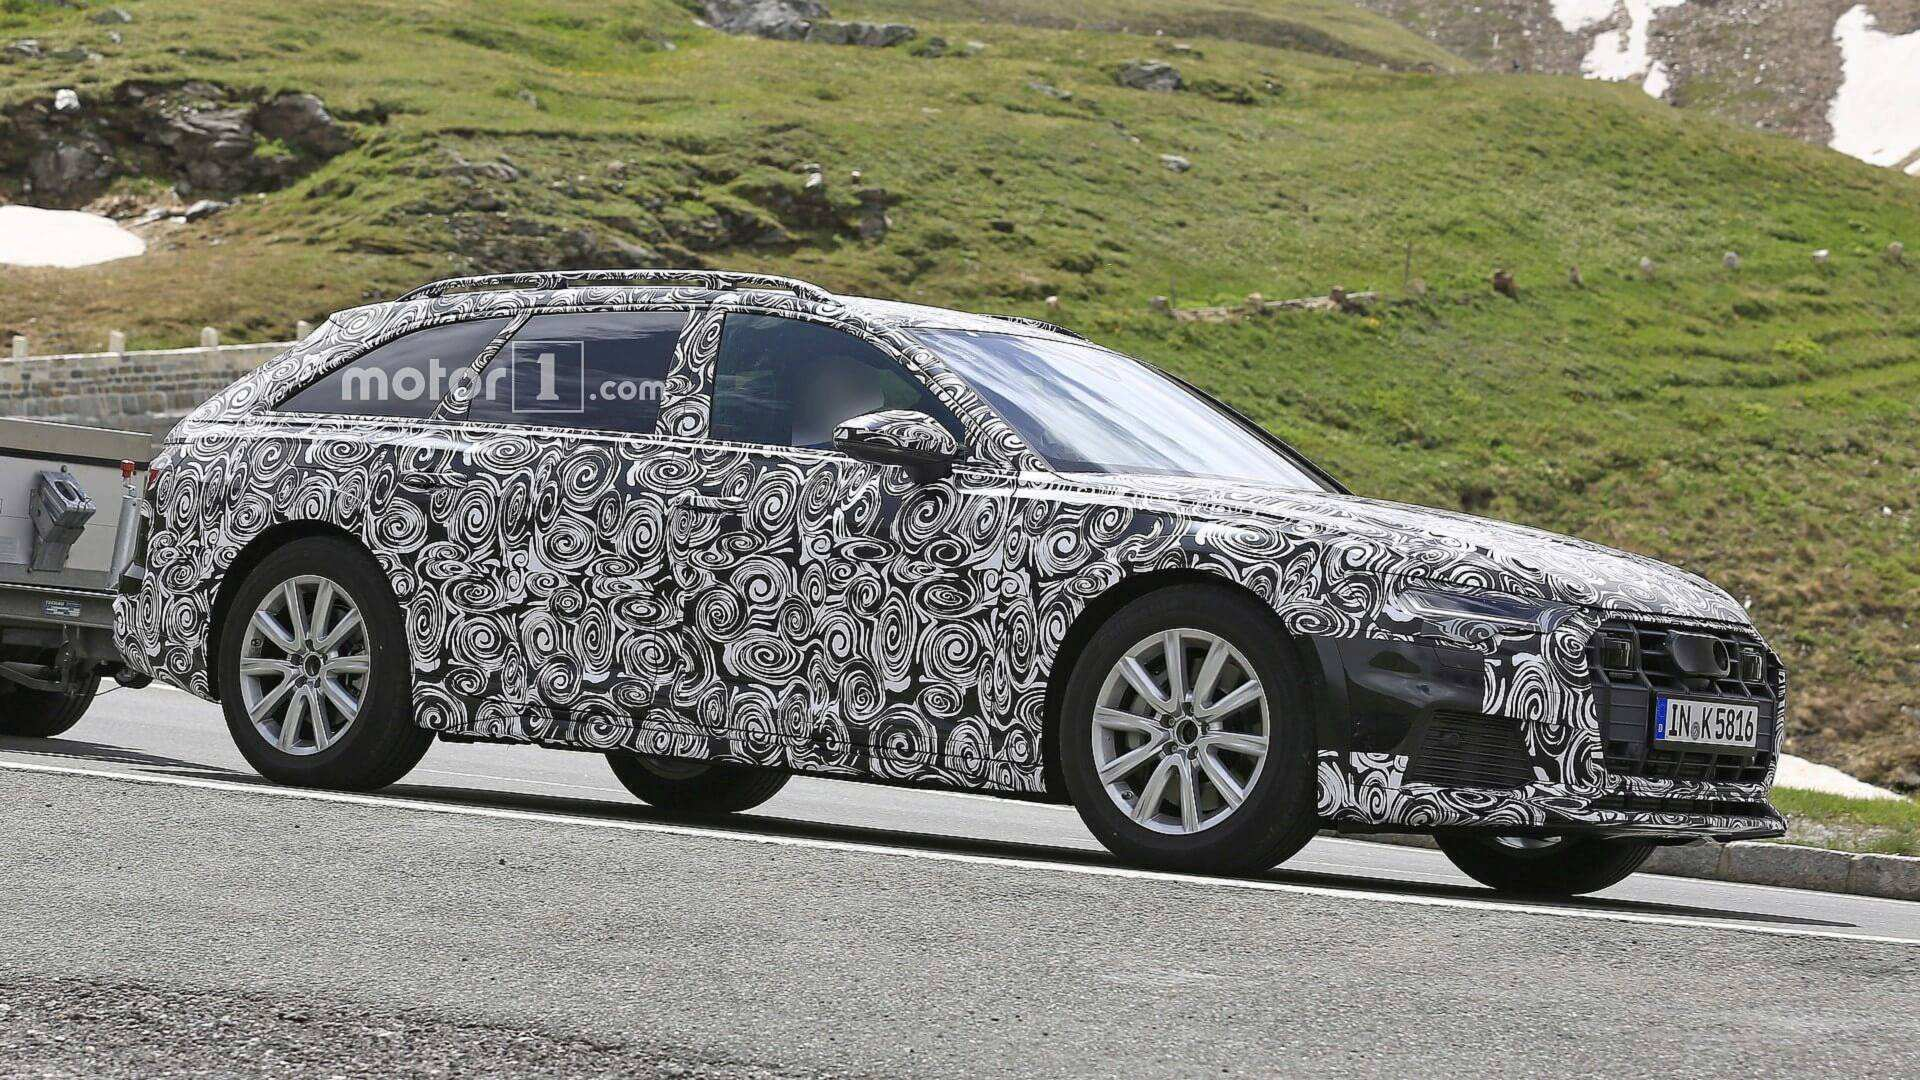 16 New 2020 The Audi A6 Interior with 2020 The Audi A6